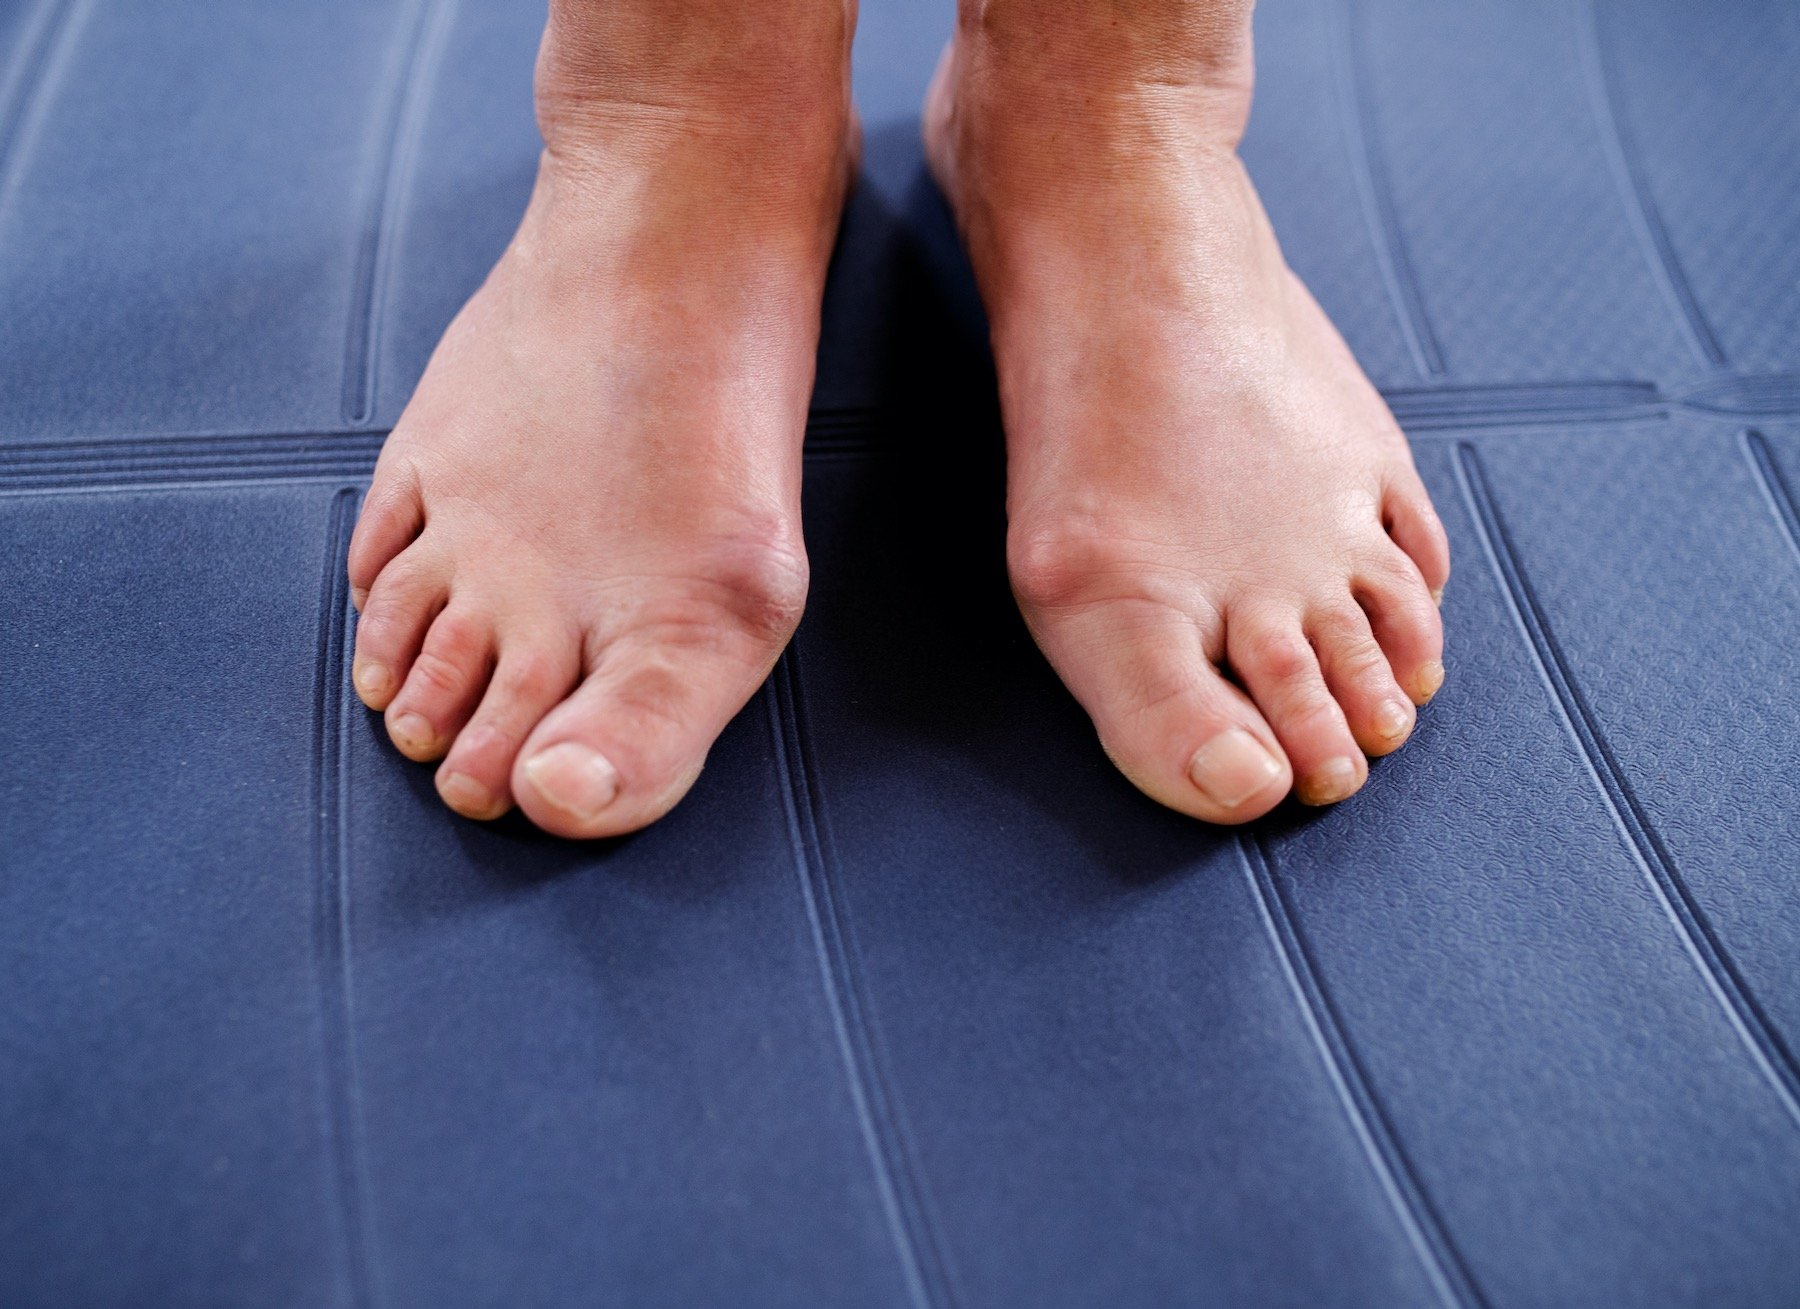 Person Suffering From Painful Bunions Wondering How to Treat Bunions at Home